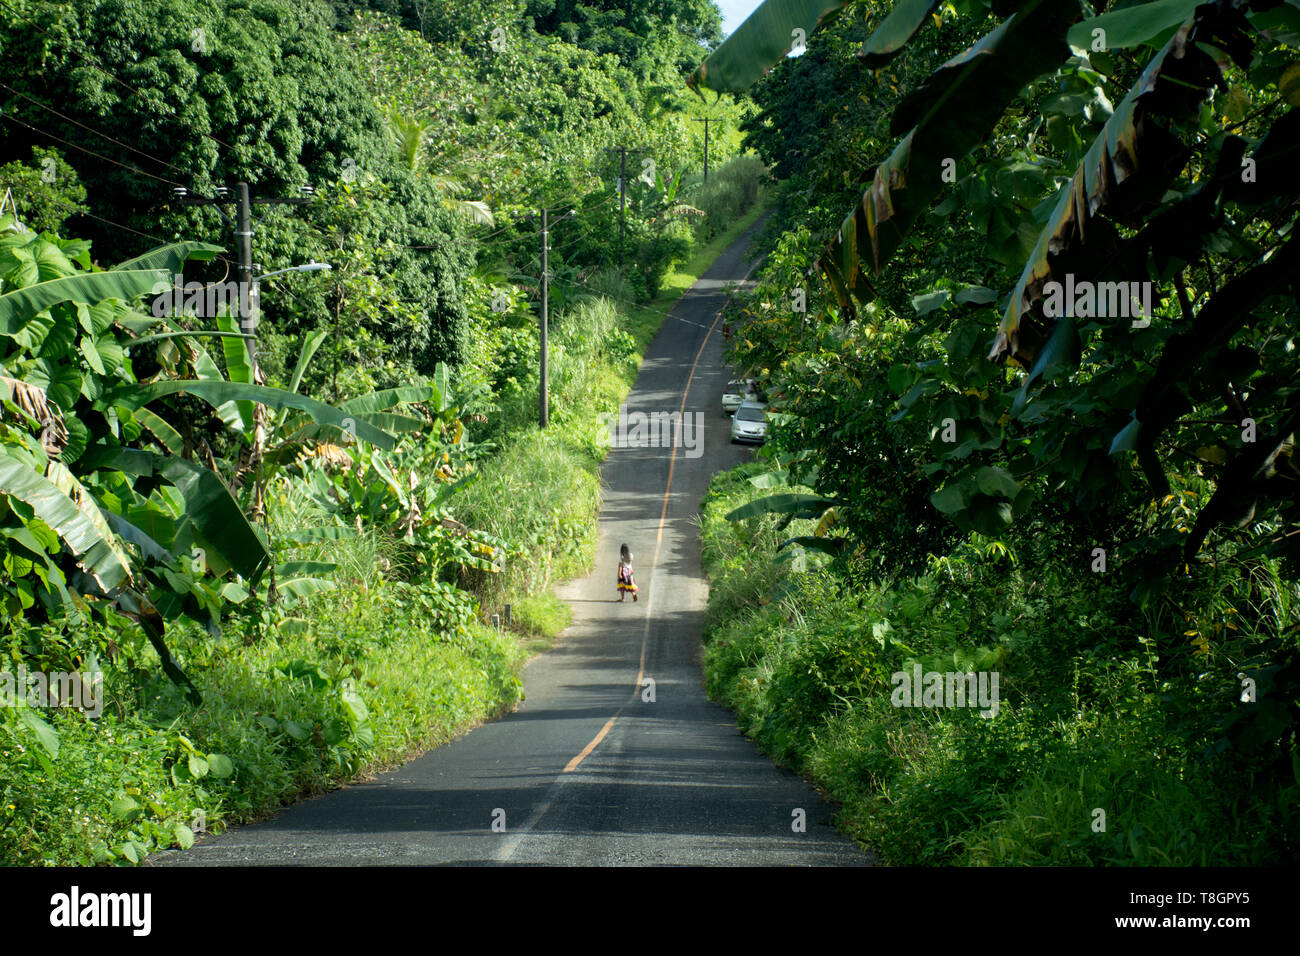 Micronesian woman crosses a road, Pohnpei, Federated States of Micronesia - Stock Image